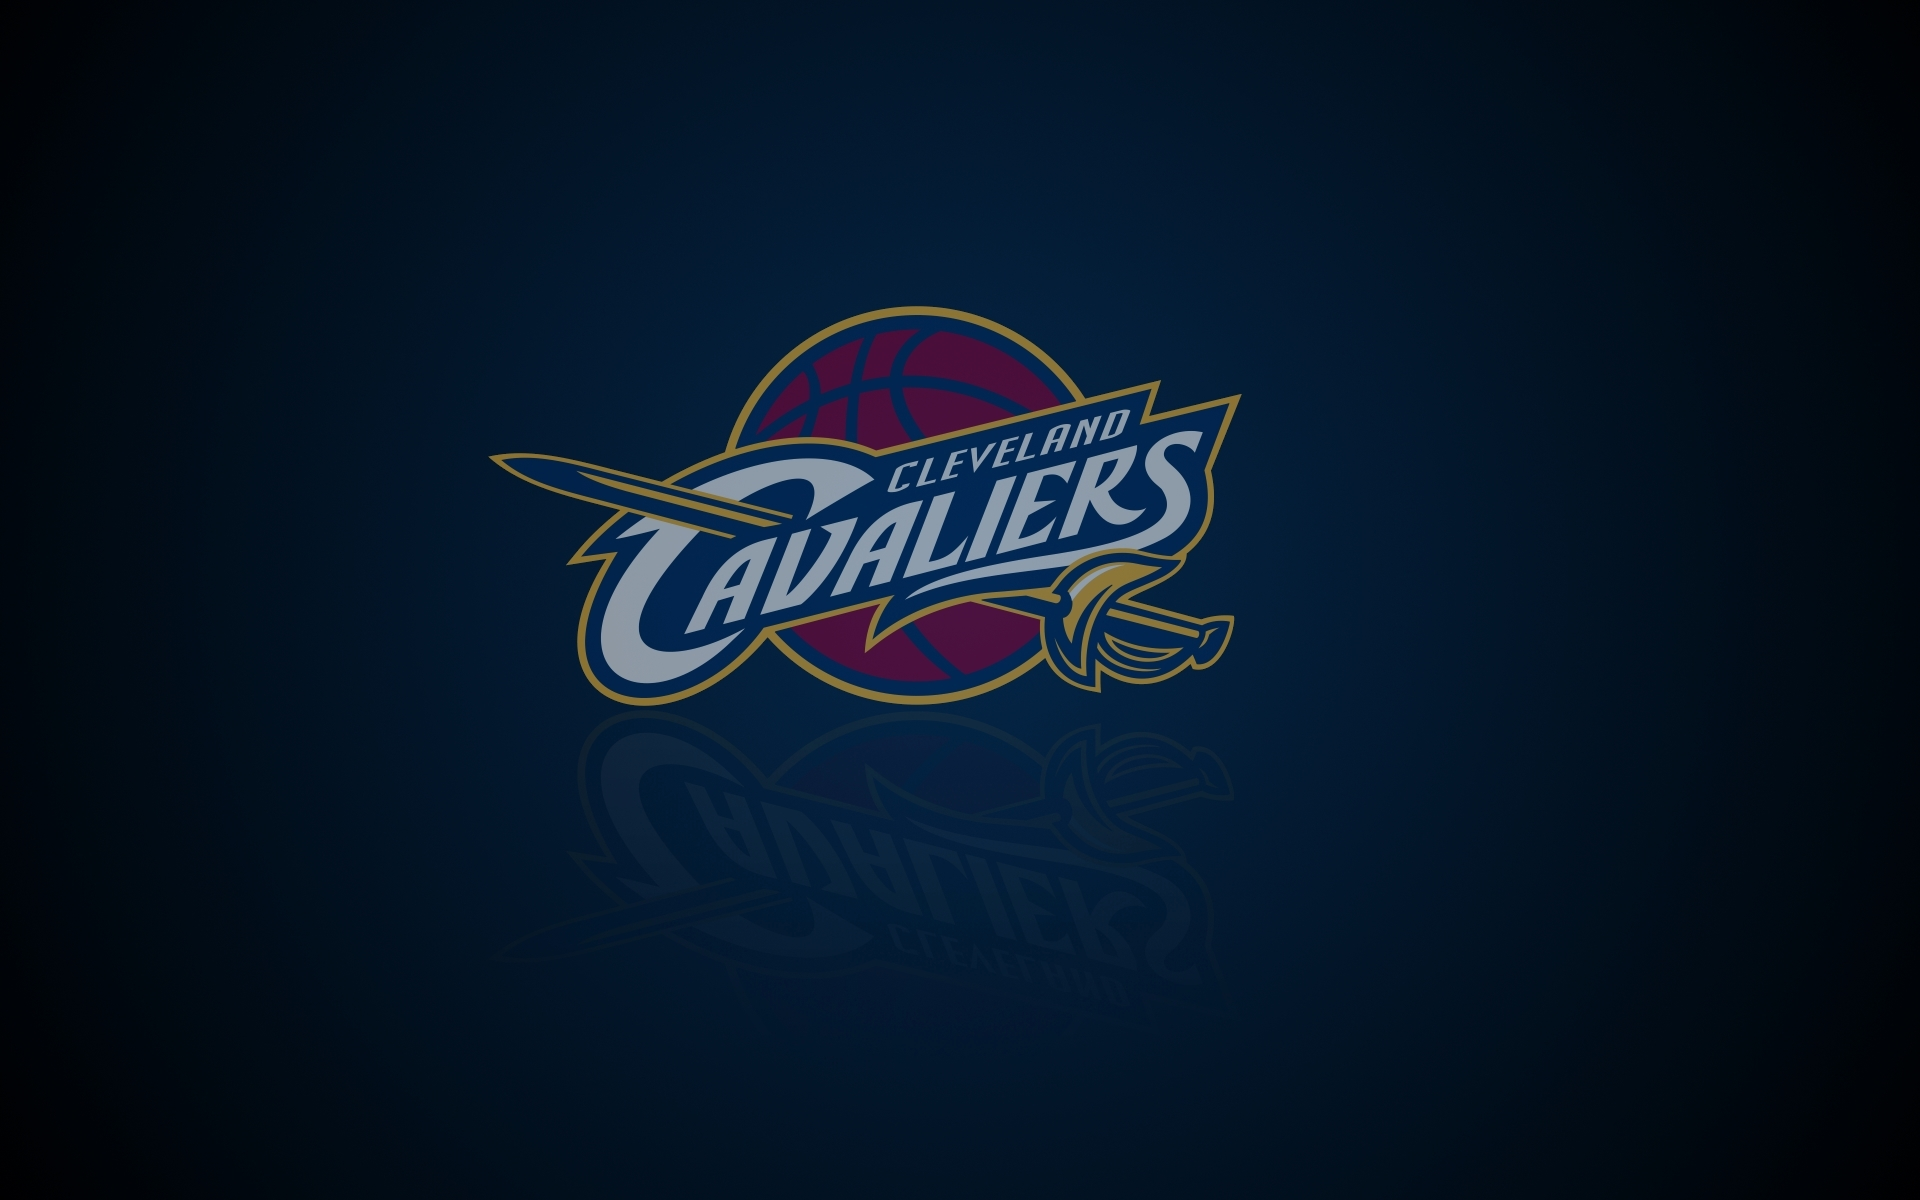 Cleveland Cavaliers Logos Download